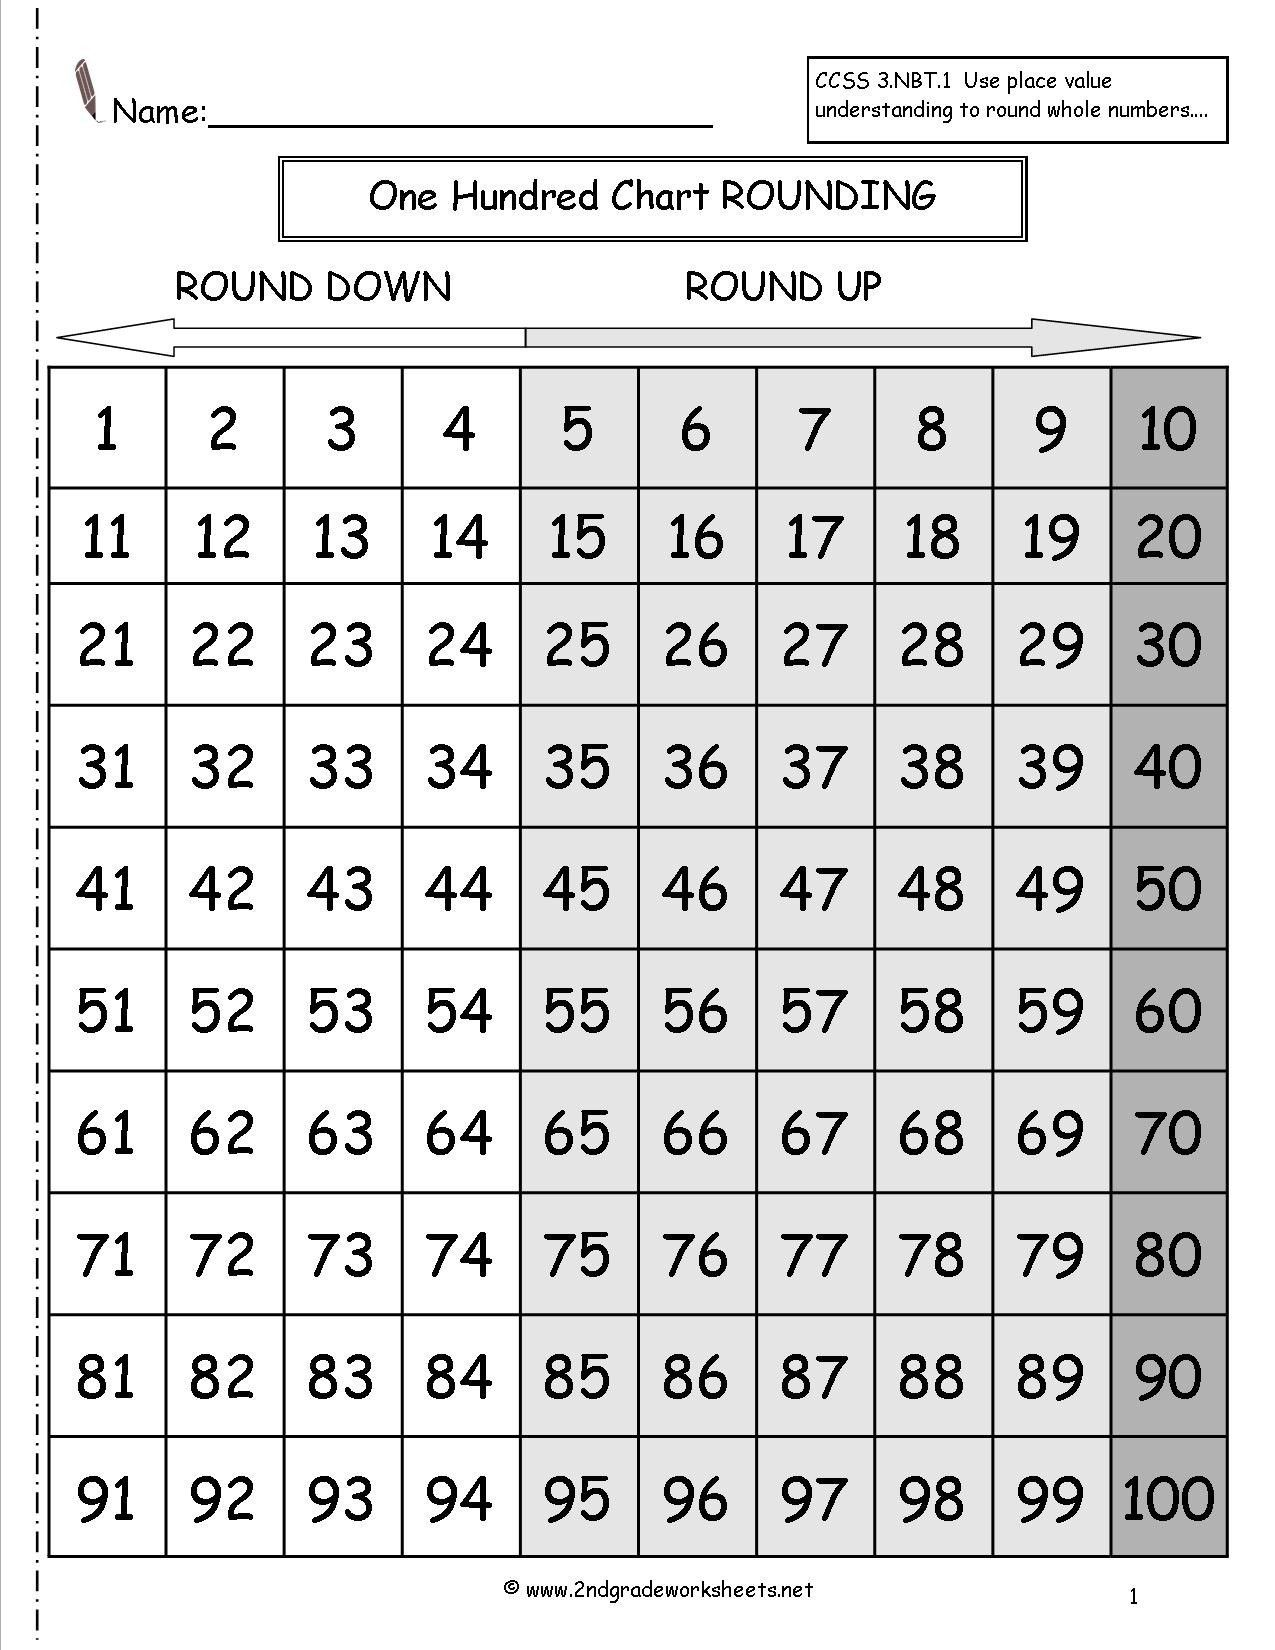 Rounding Number Worksheets Subjects Educationlevel